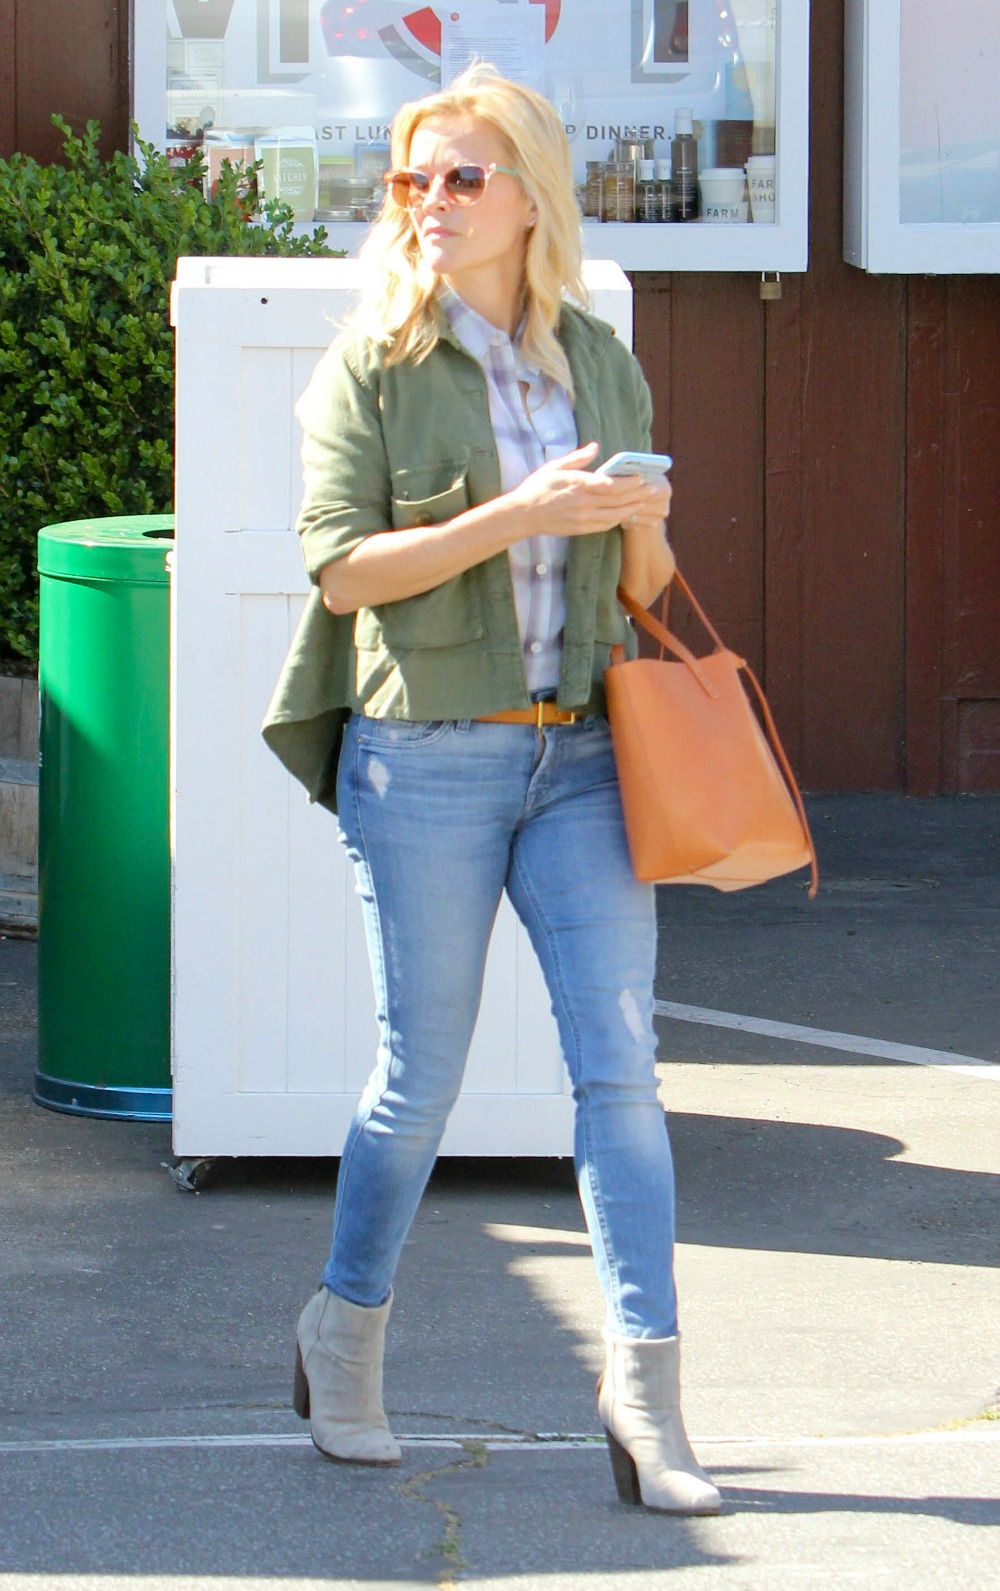 Forum on this topic: Reese Witherspoons Cute Casual Mom Style, reese-witherspoons-cute-casual-mom-style/